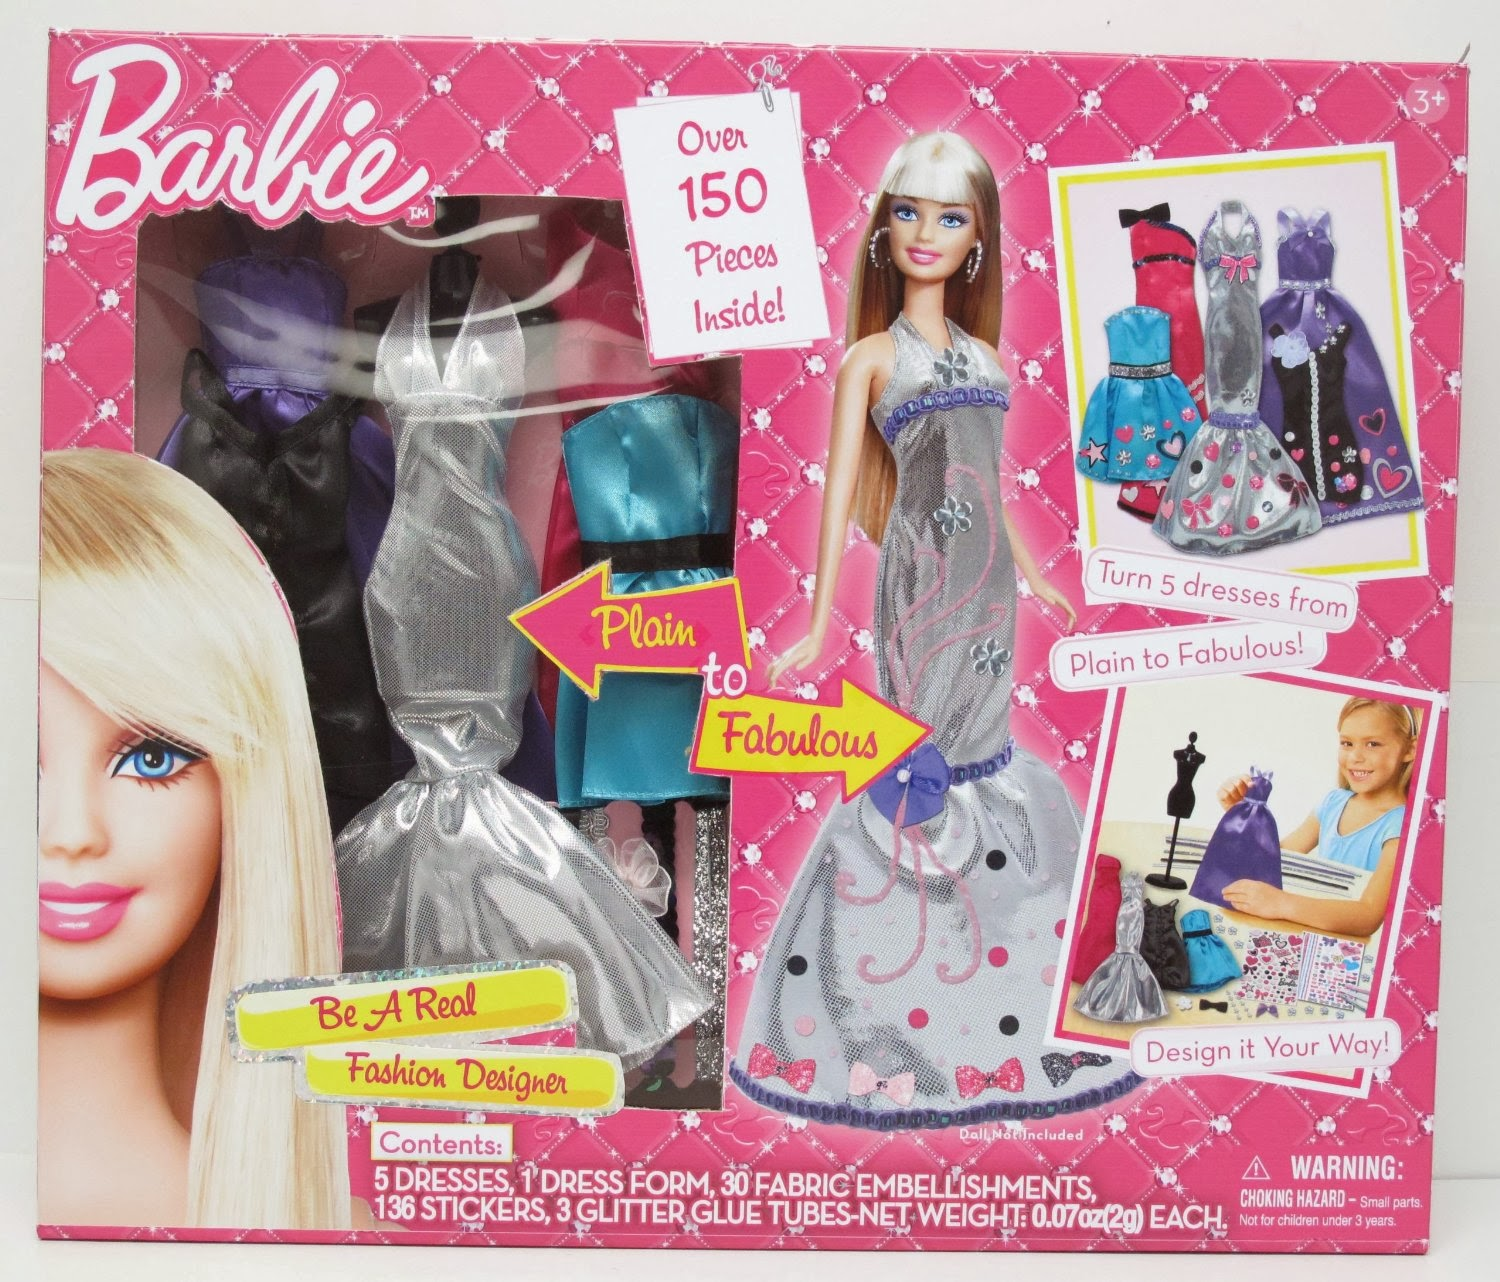 Barbie games free online download barbie games for kids Online fashion designer games